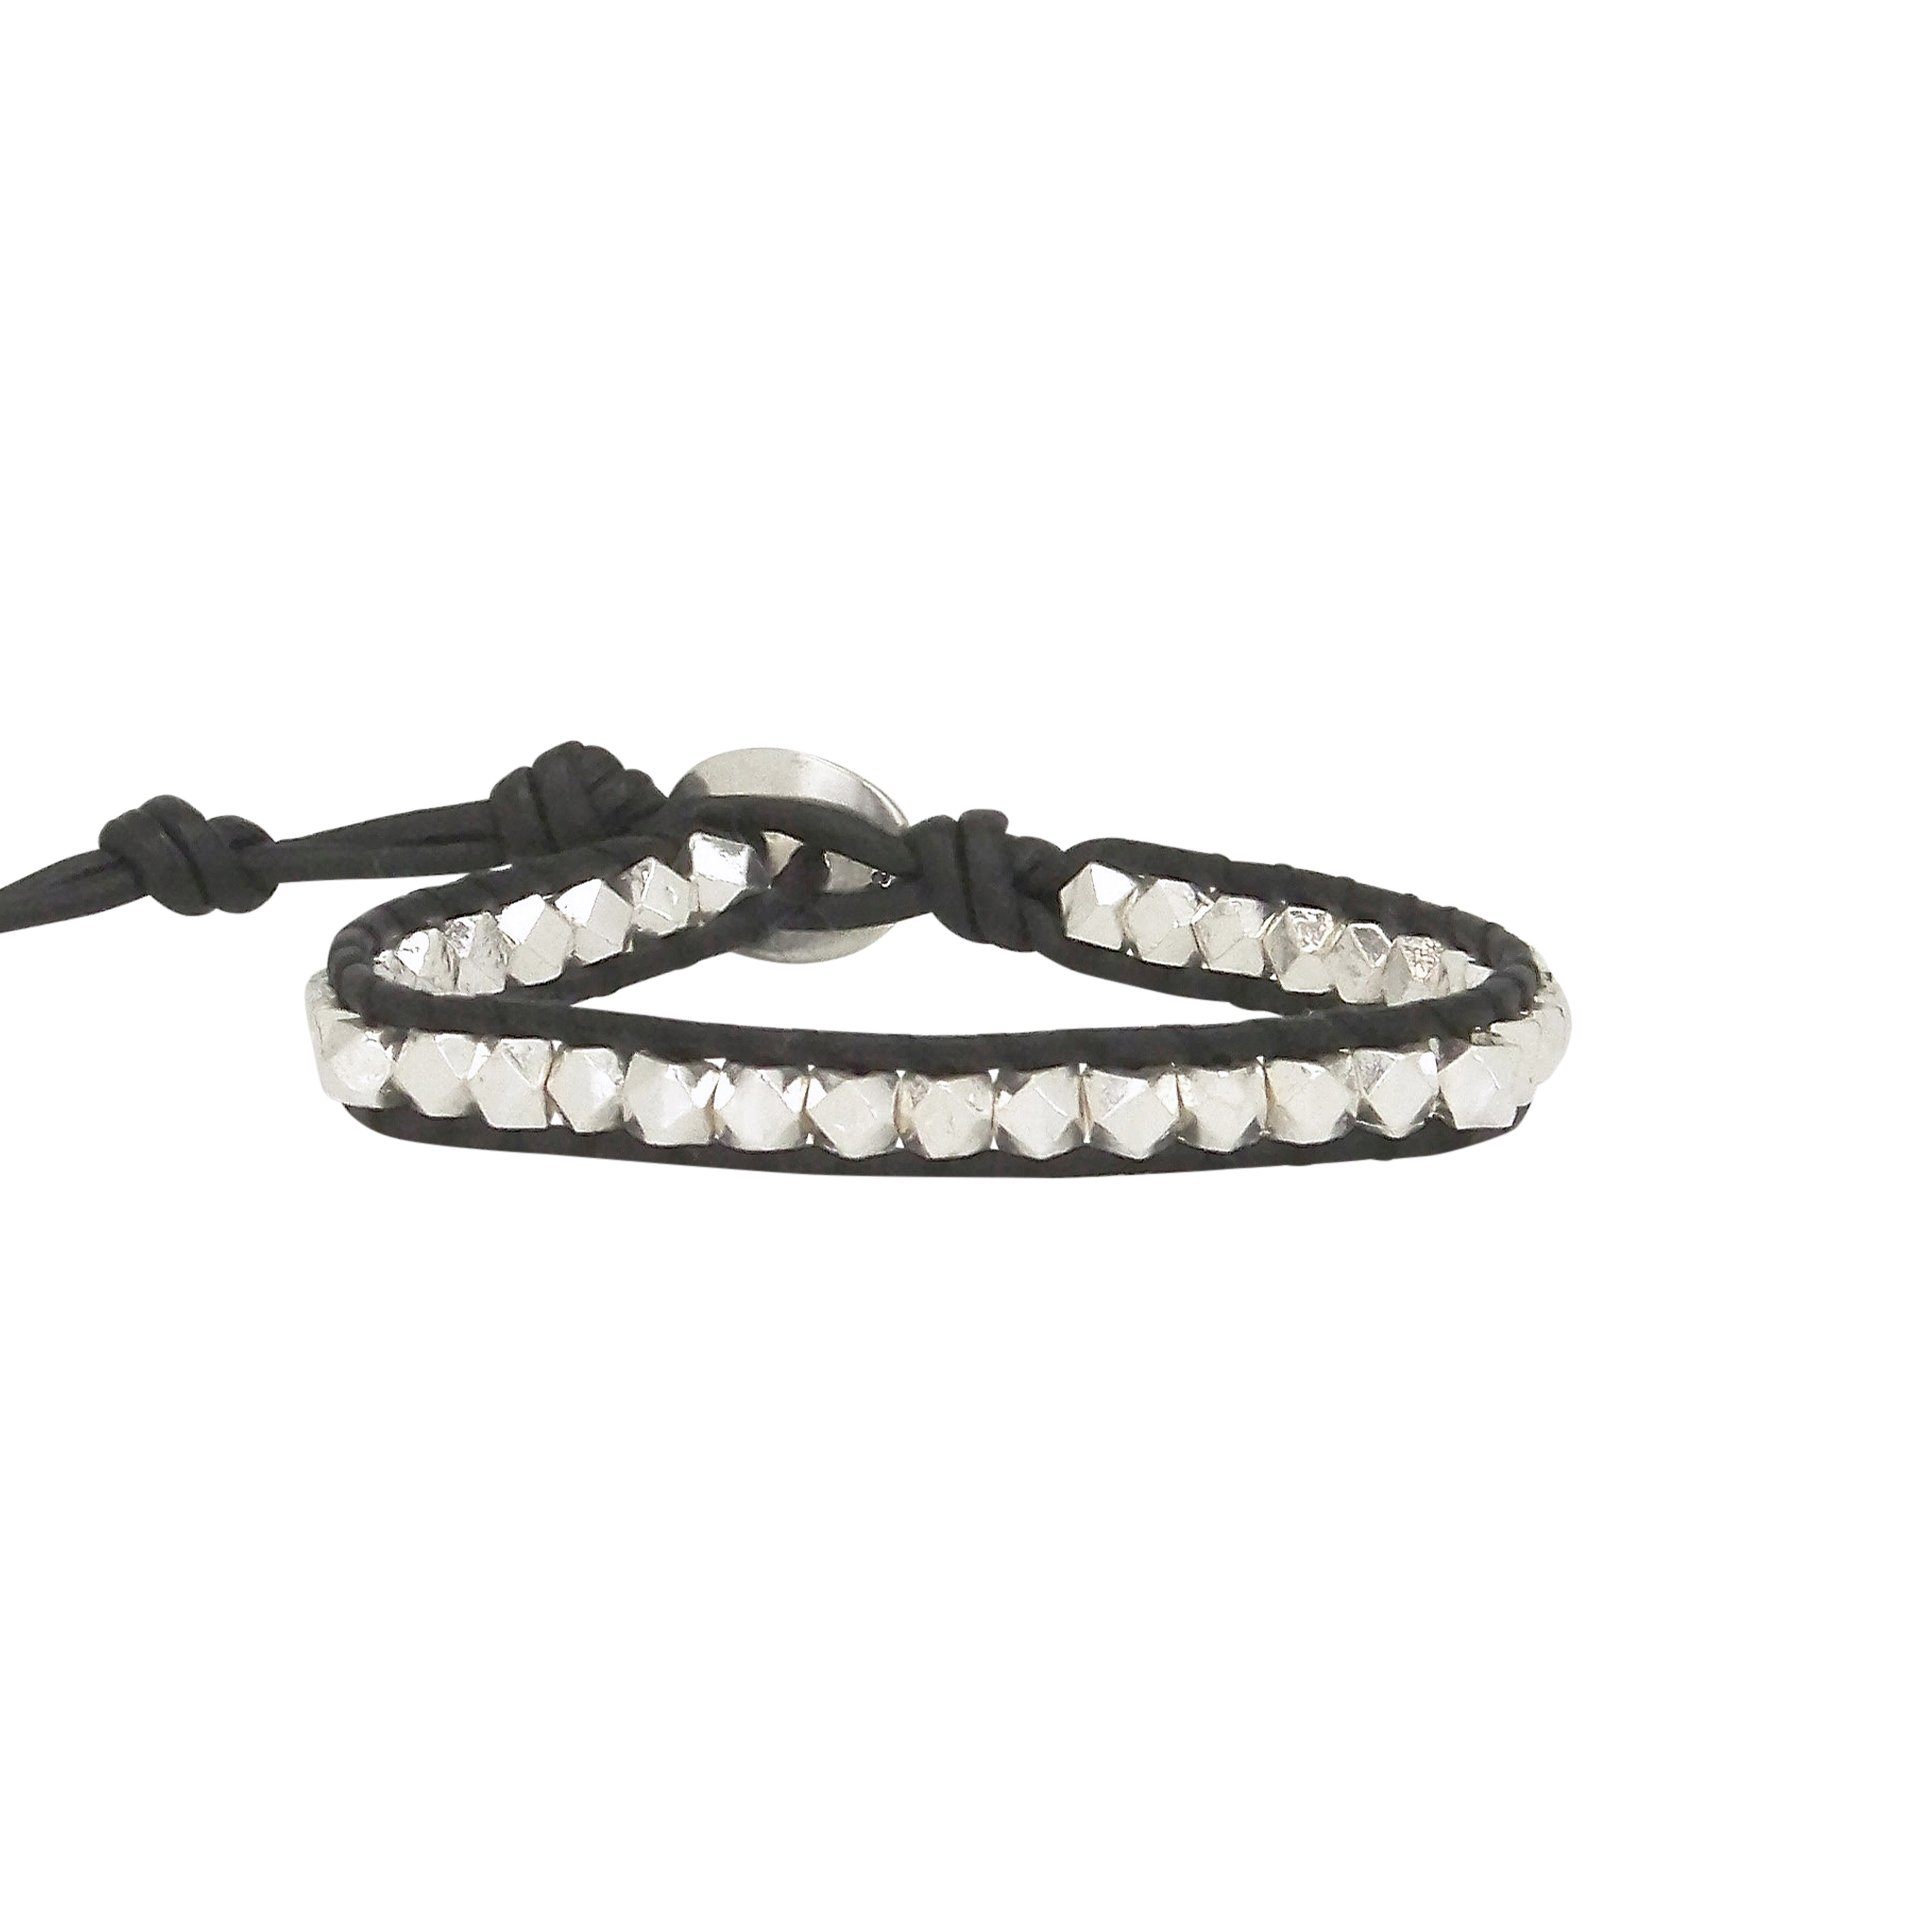 Chan Luu Single Wrap Bracelet in Silver Nuggets and Black Leather